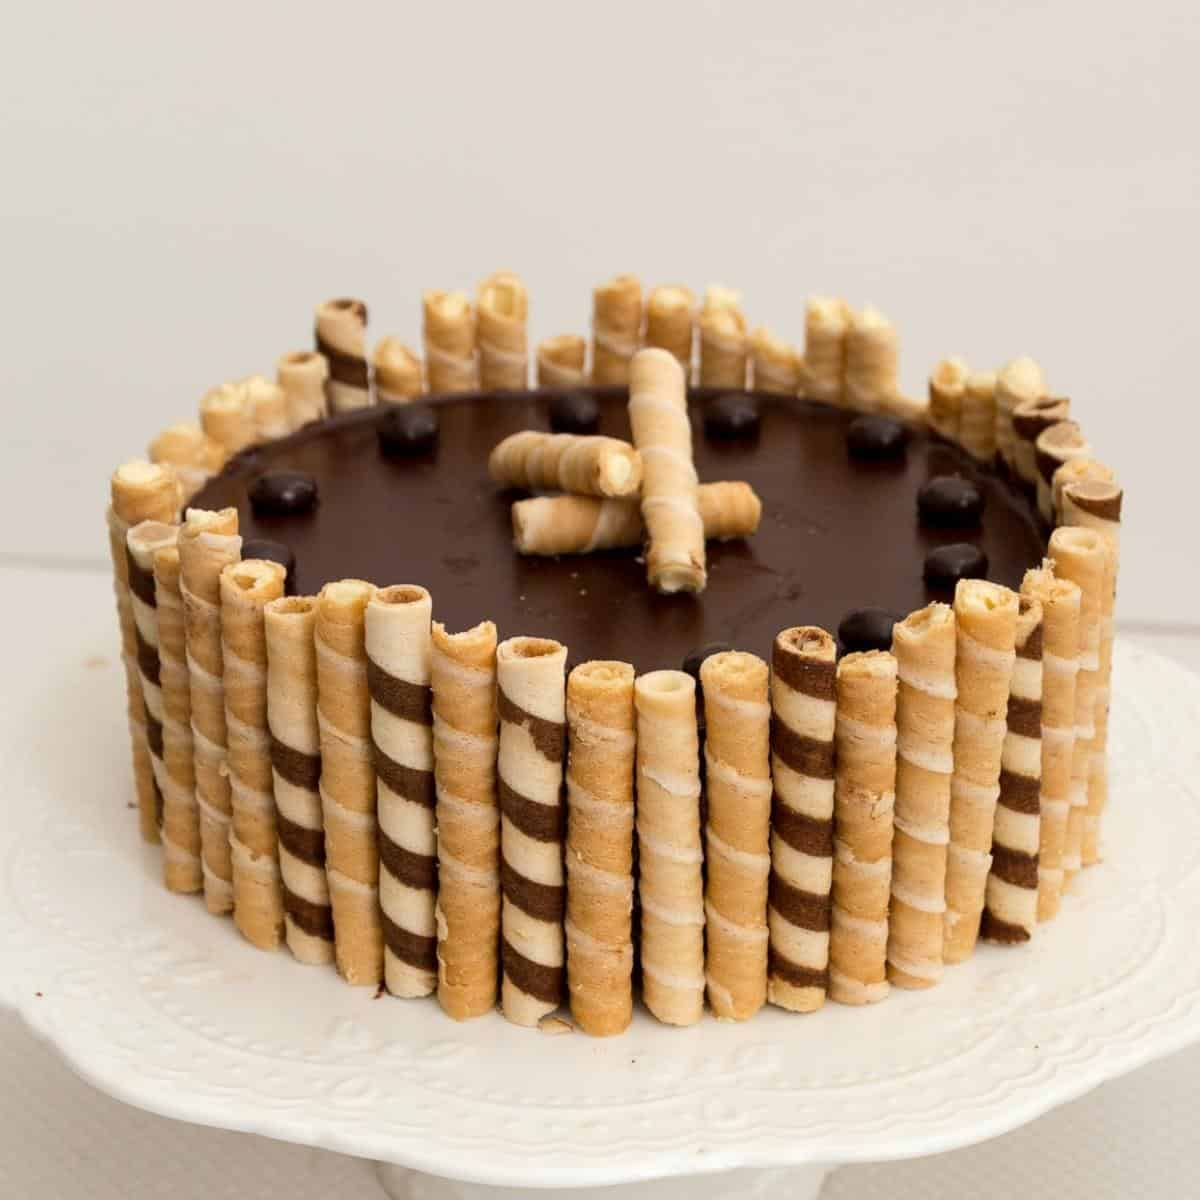 A chocolate torte surrounded by wafers.